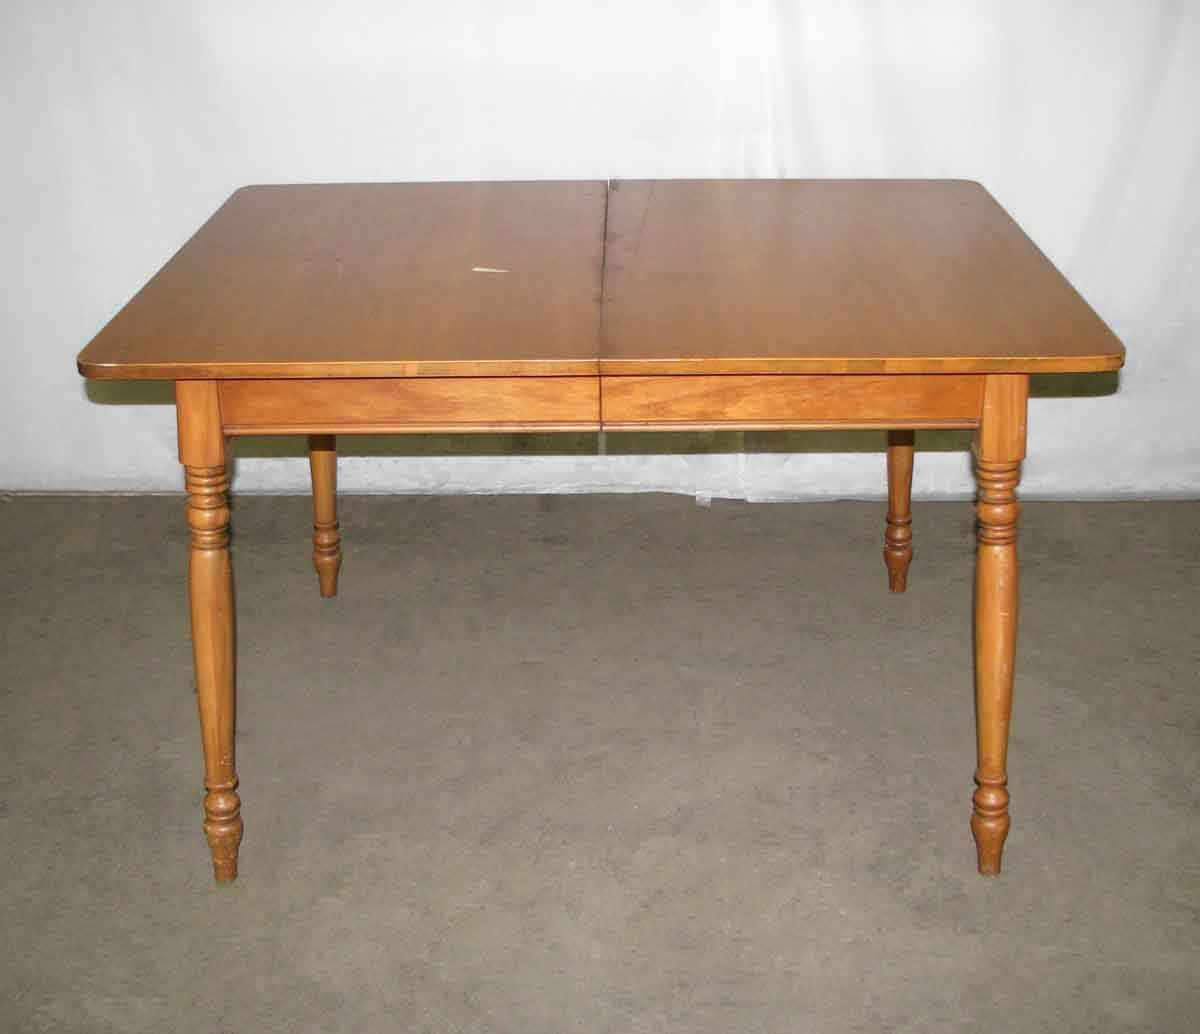 Small Wooden Dining Table: Extendable Small Wooden Dining Table